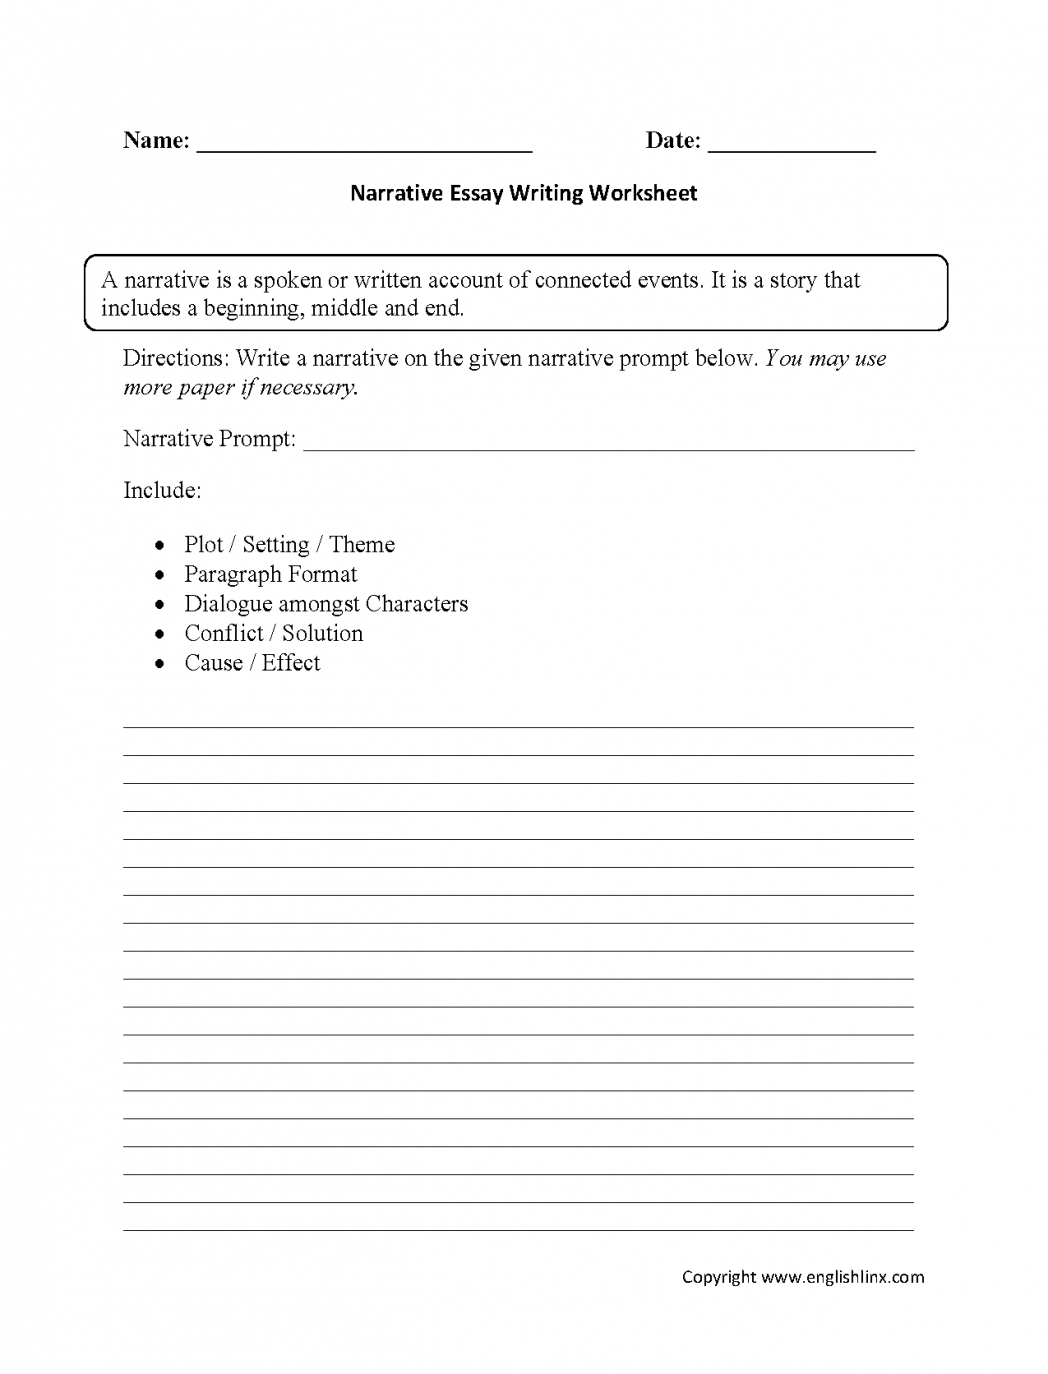 005 Essay Example Map Graphic Organizer Writing Worksheets Organizers For Within College Surprising Application Argumentative Full